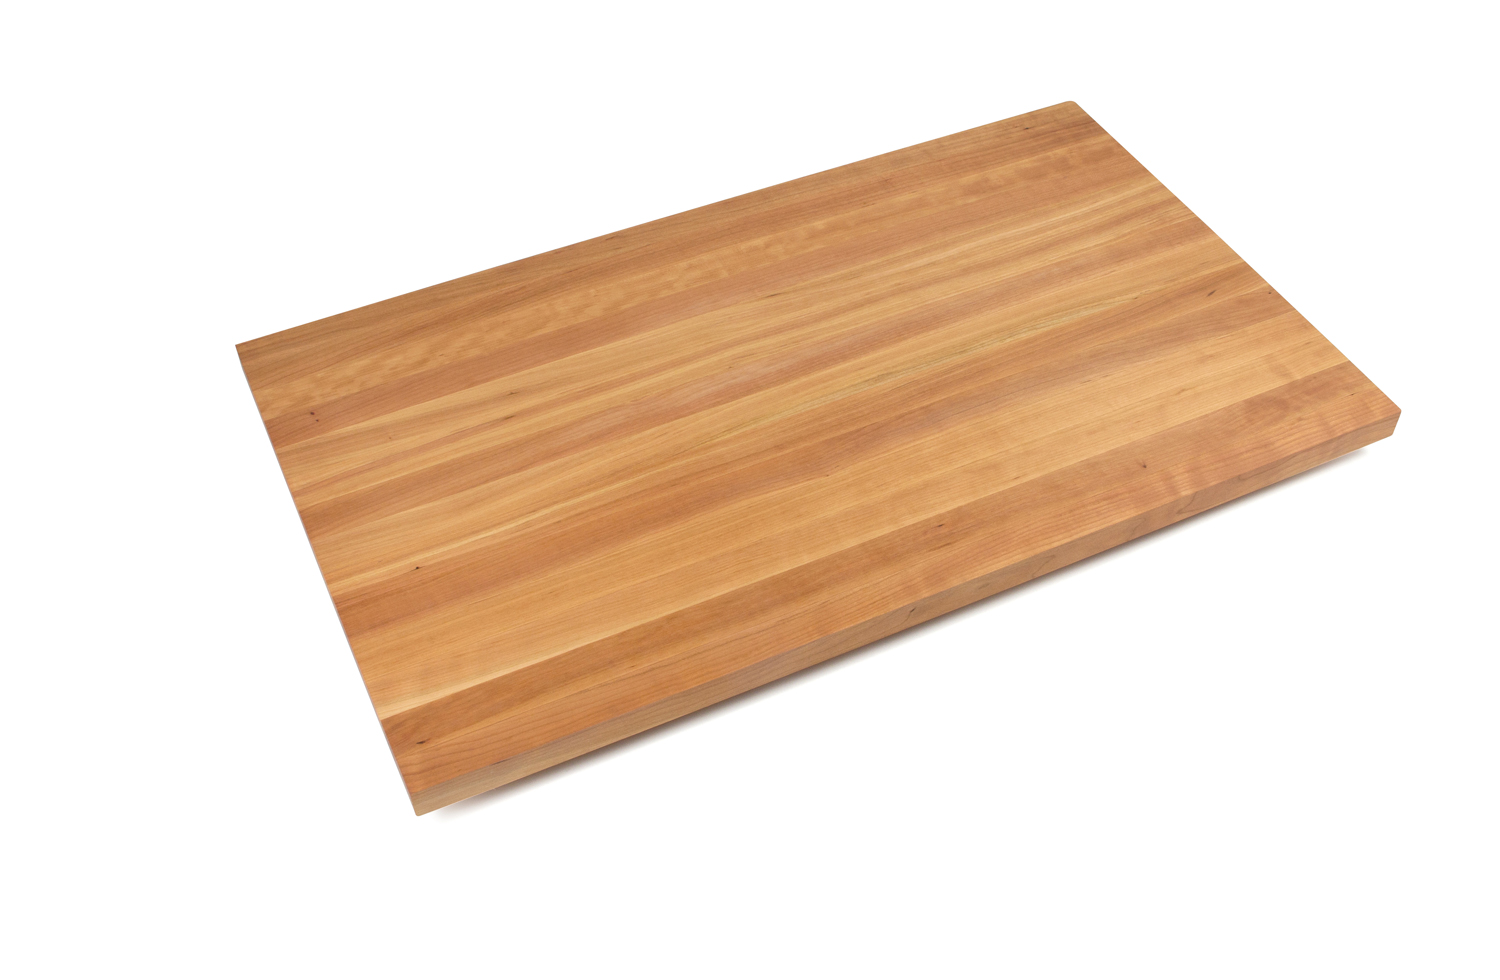 3 inch cherry butcher block edge grain 30 inches wide